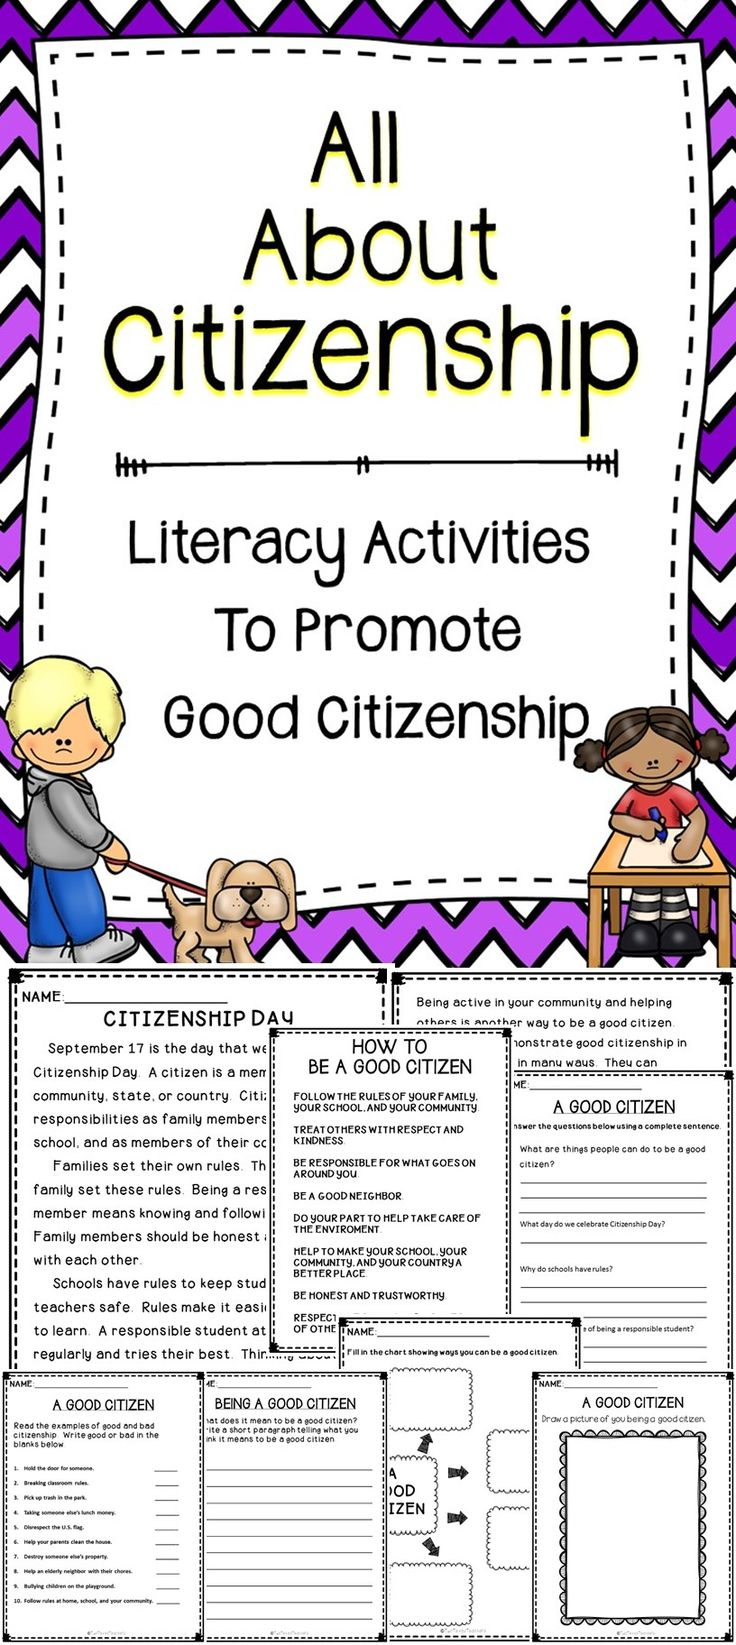 how to become a good citizen essay result thieves cf how to become a good citizen essay